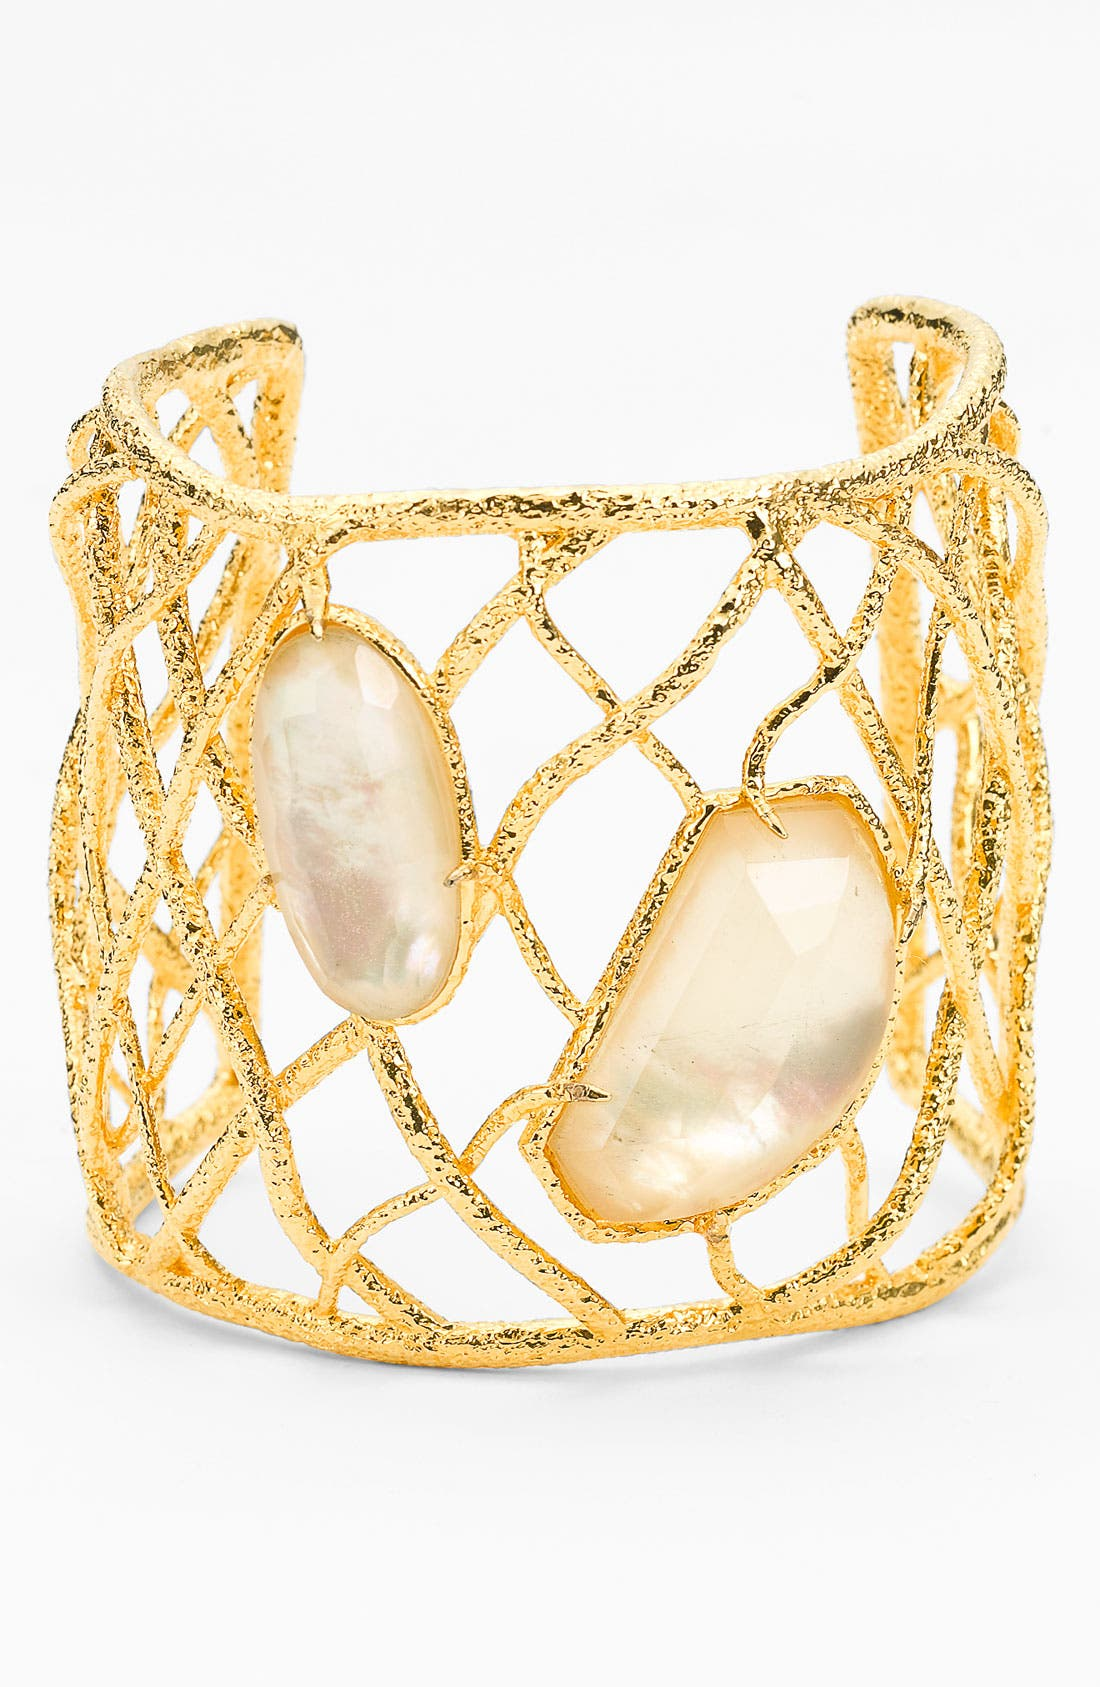 Alternate Image 1 Selected - Alexis Bittar 'Elements' Woven 2-Stone Cuff